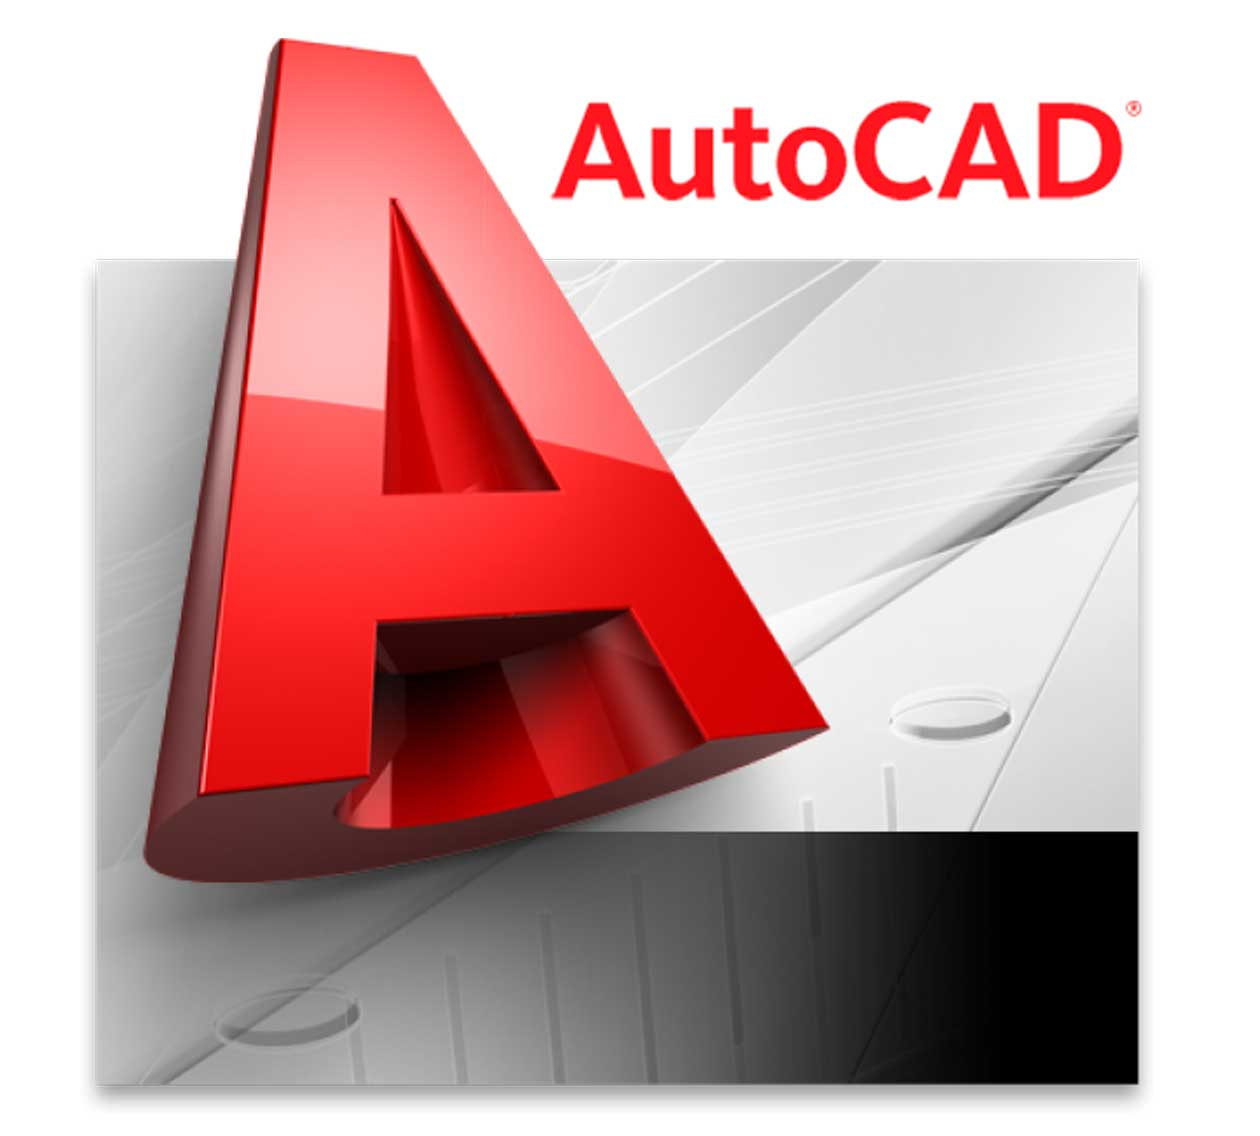 Autocad 2018 Free Download Full Version And Activate